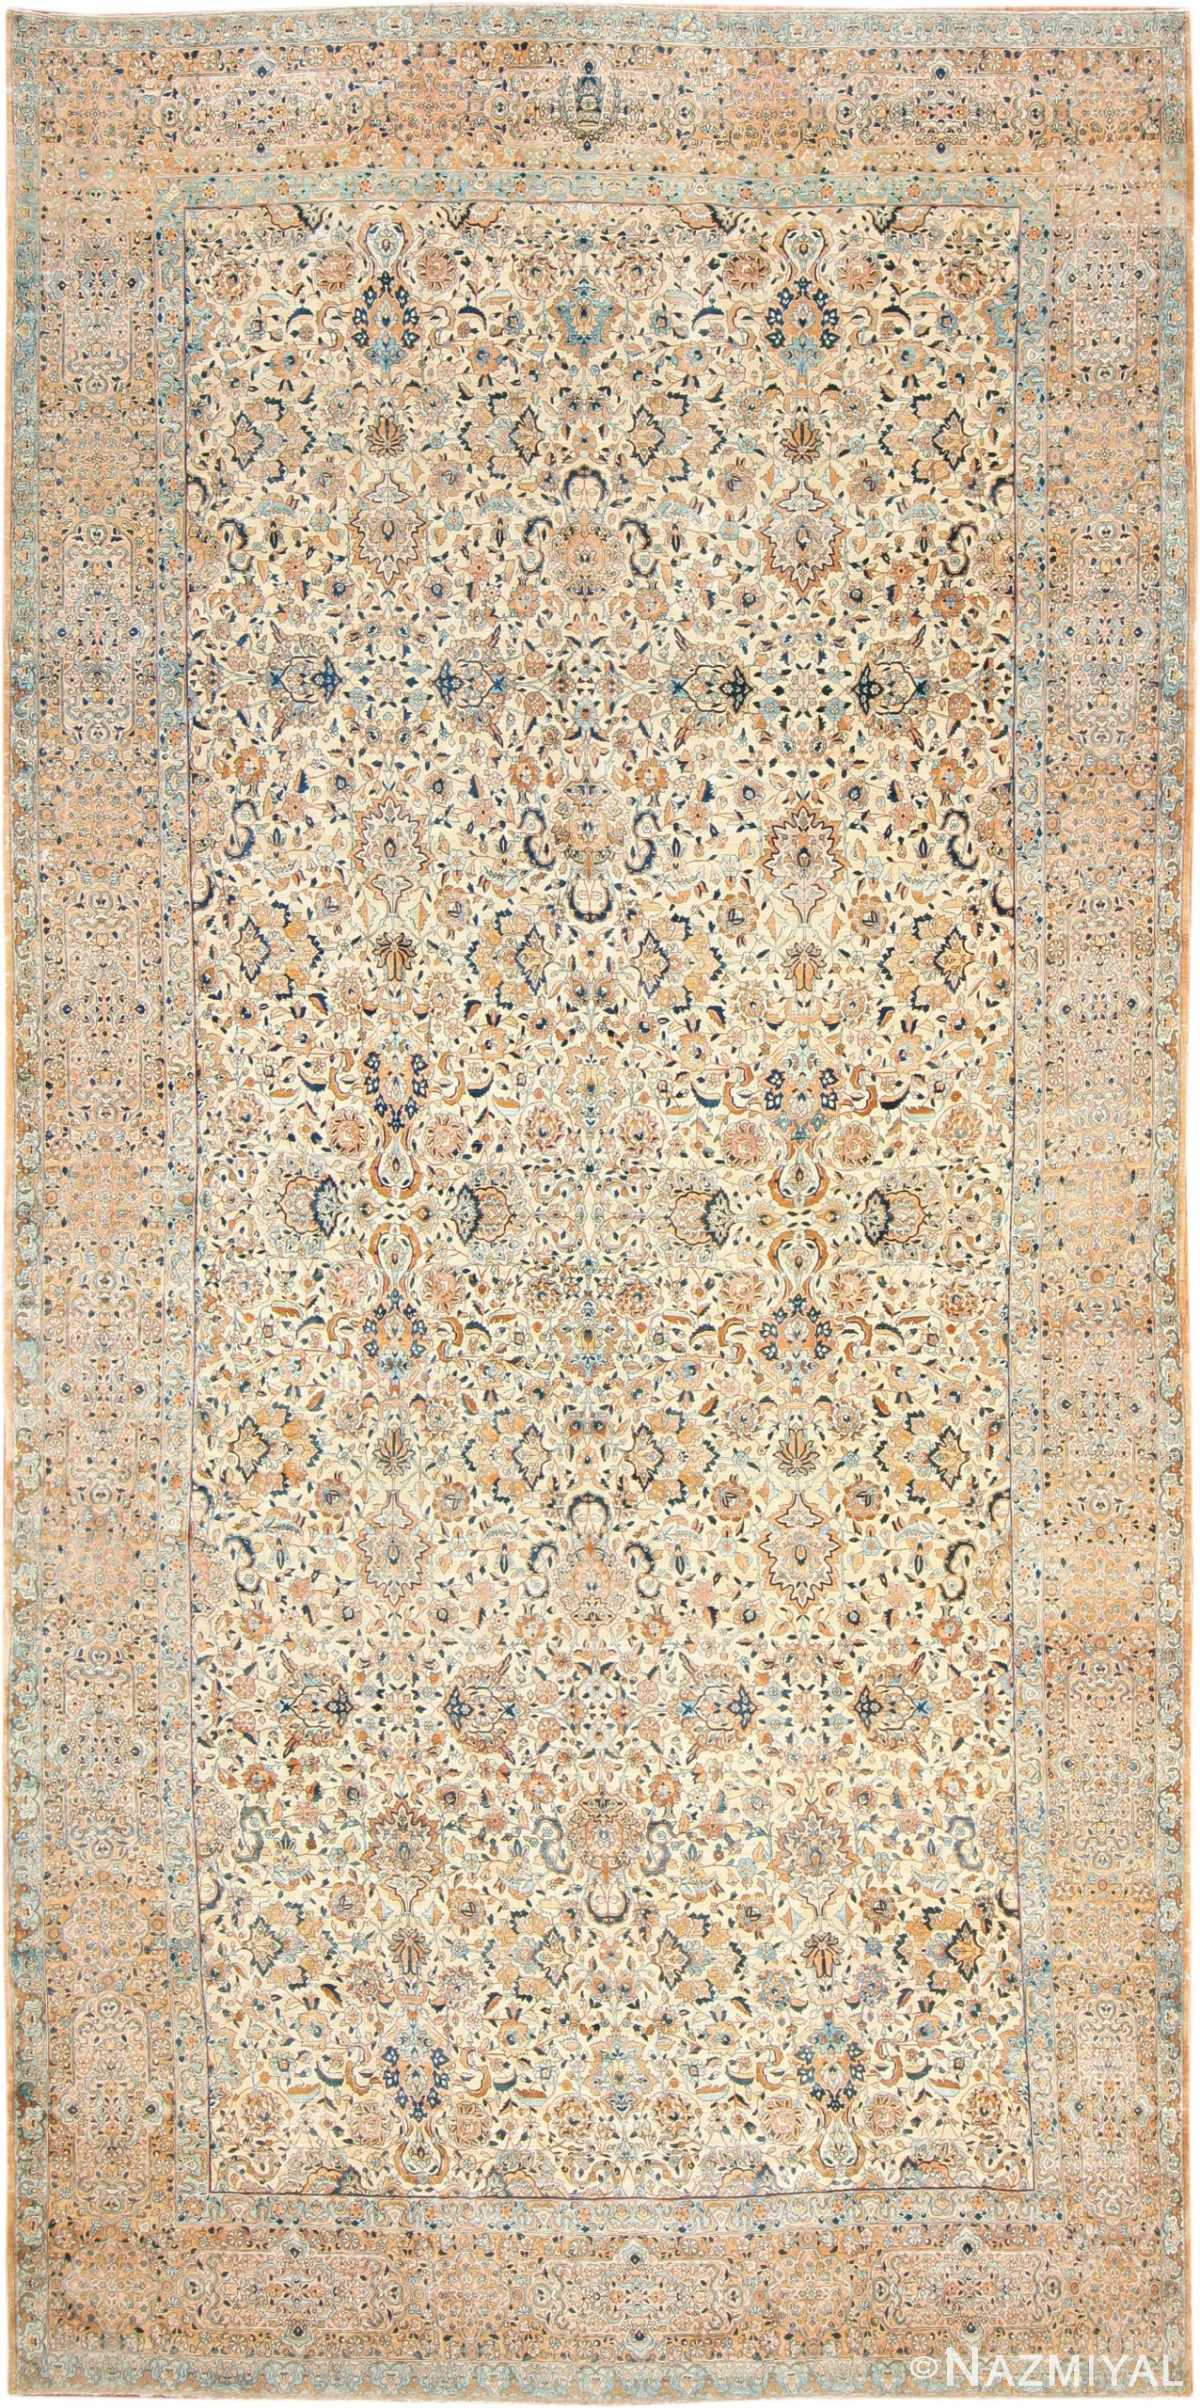 Oversize Ivory Background Antique Kerman Rug 47527 Nazmiyal